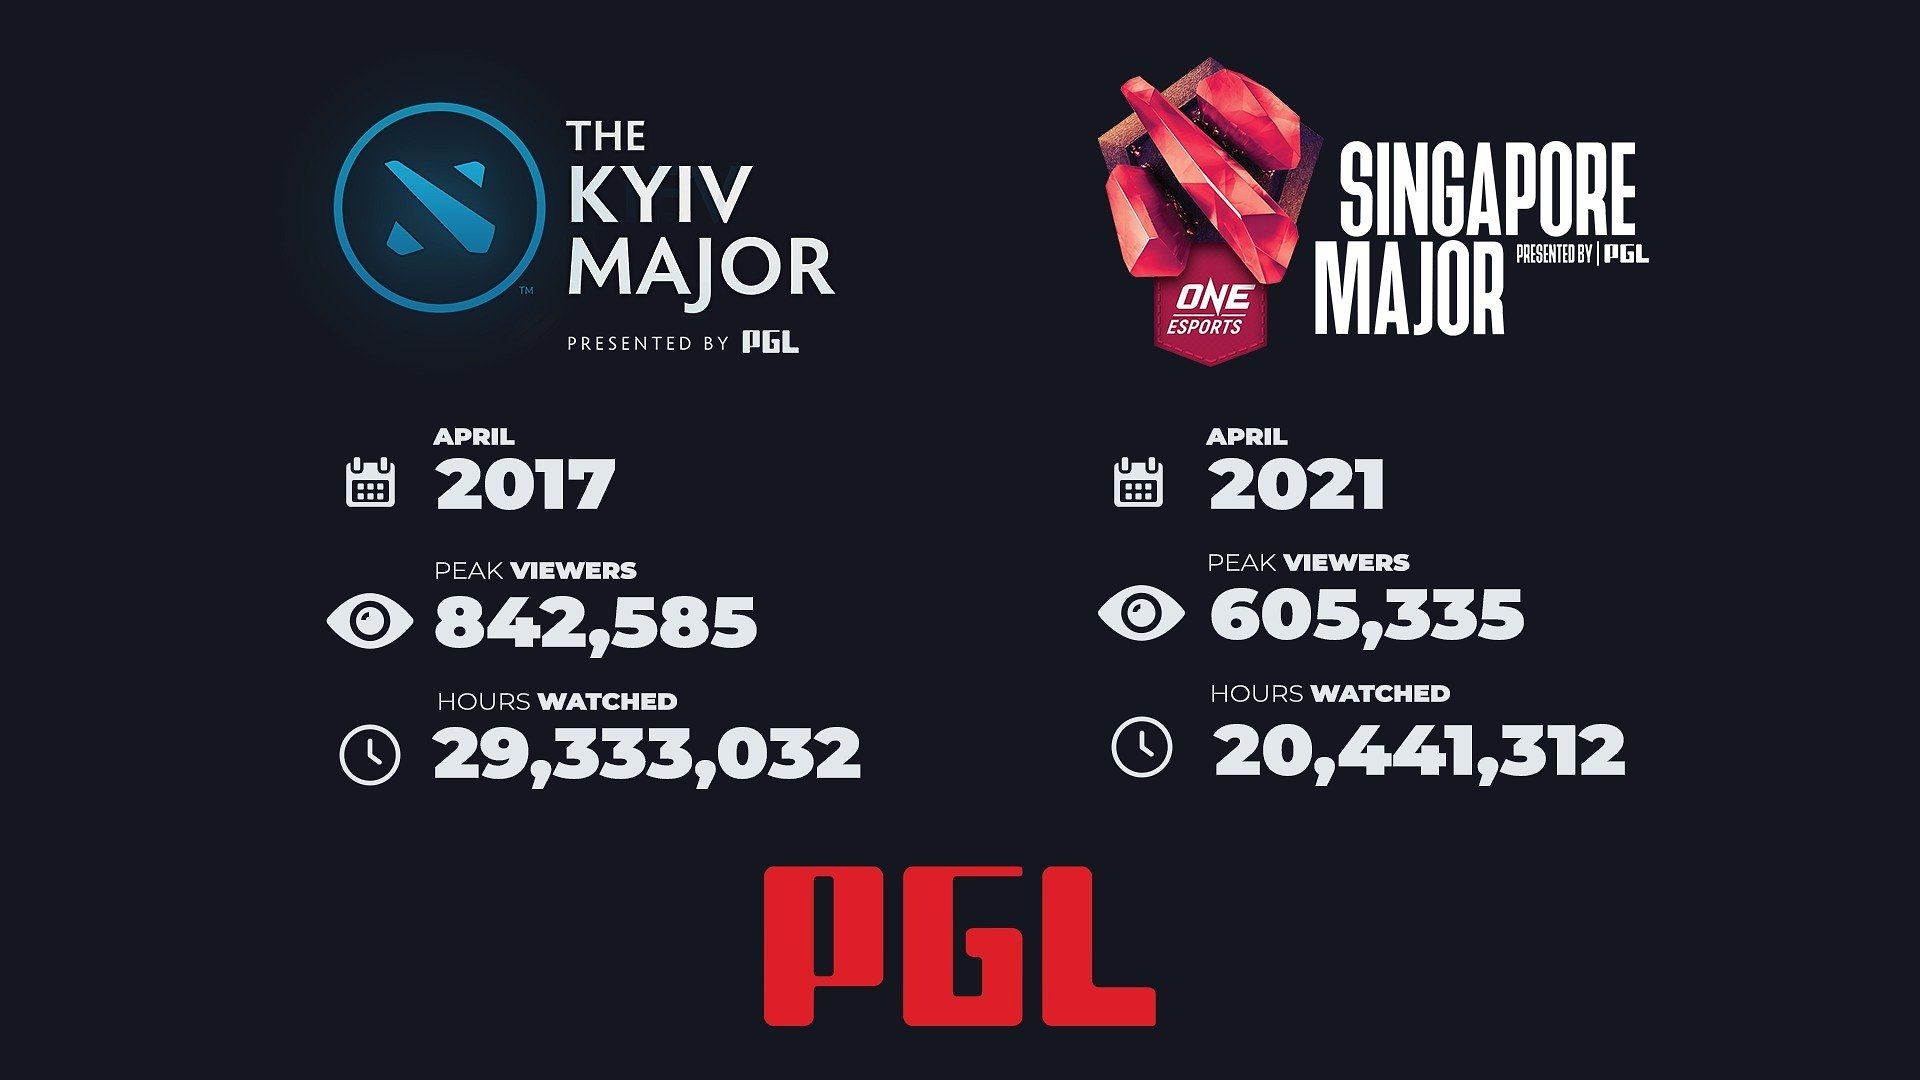 Singapore Major, the second most-watched DOTA 2 Major ever